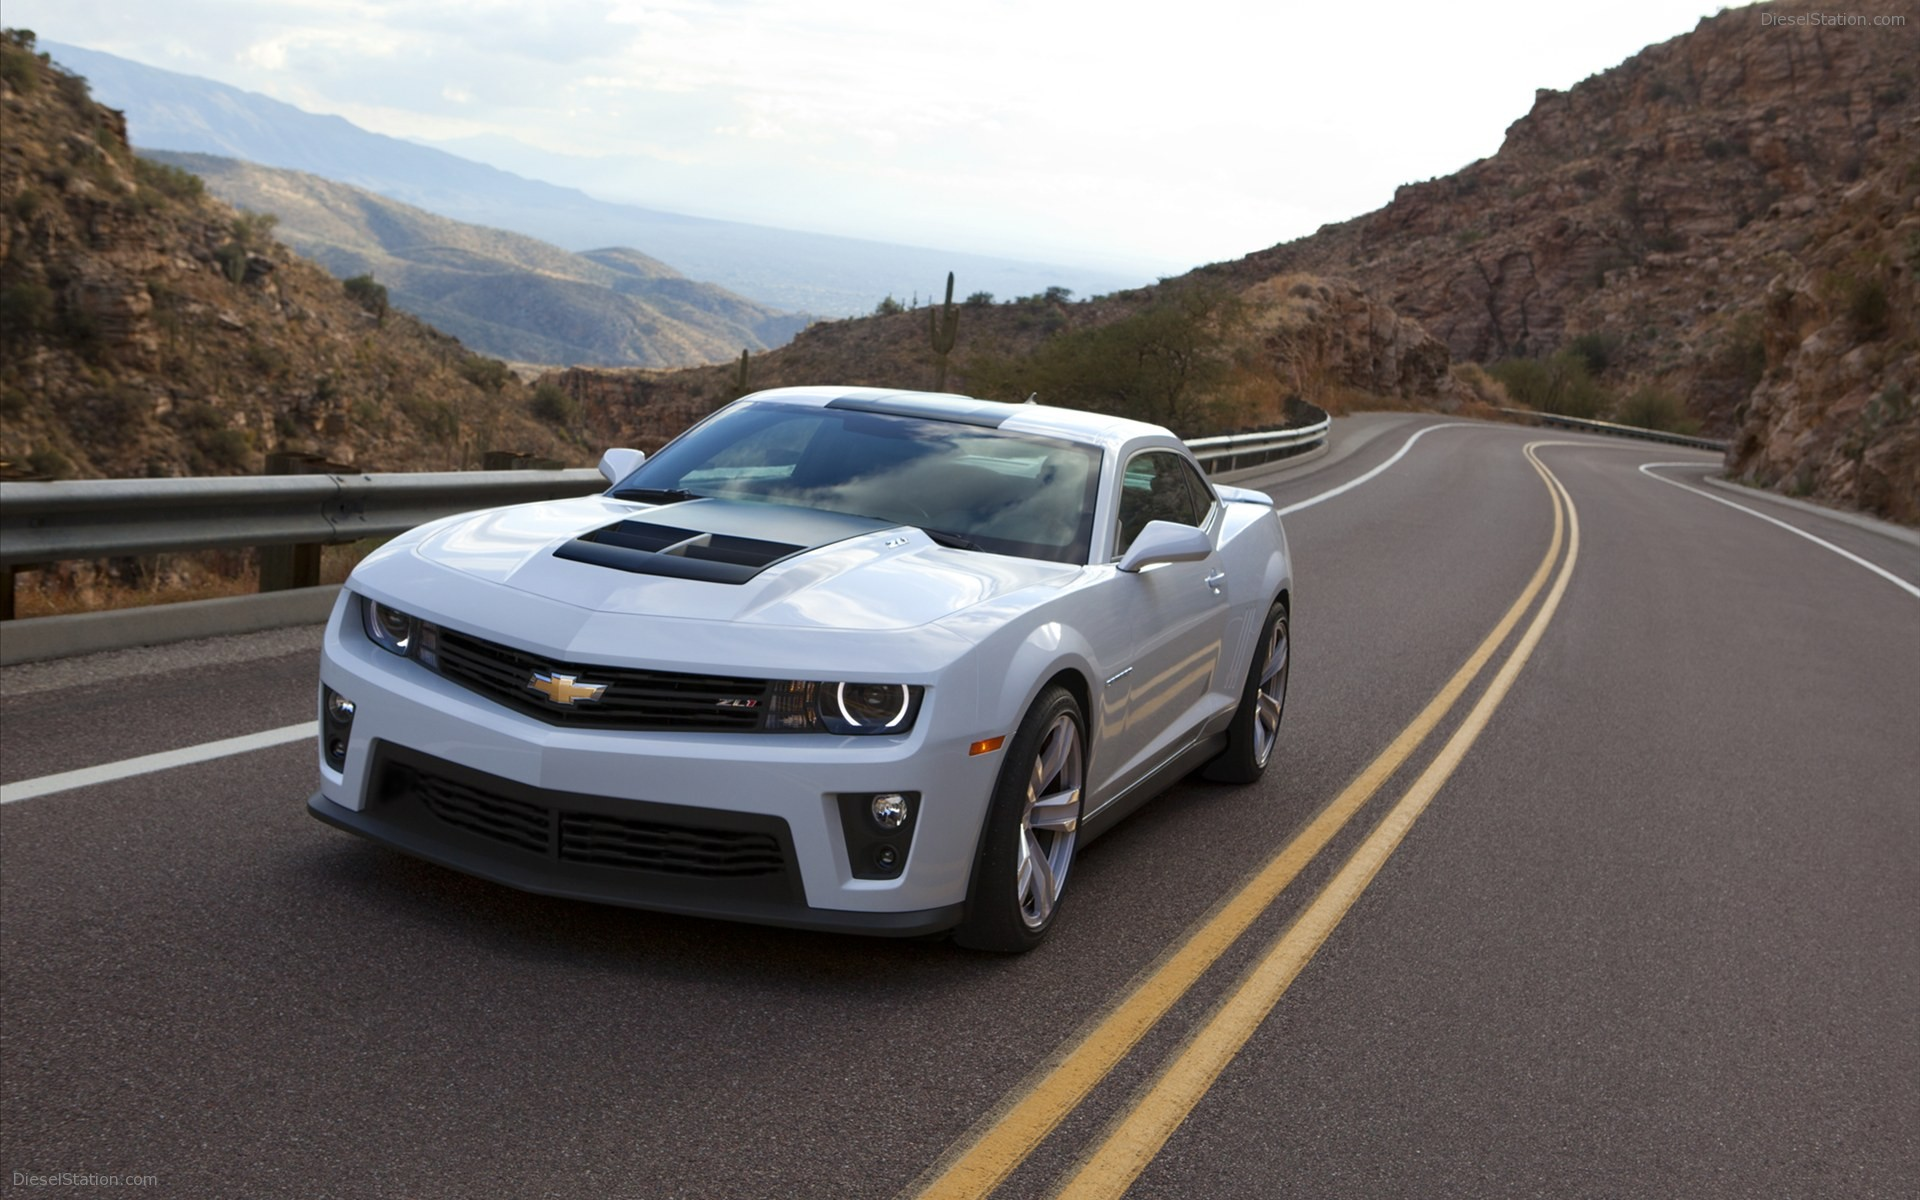 Chevrolet Camaro ZL1 2012 Widescreen Exotic Car Pictures 1920x1200